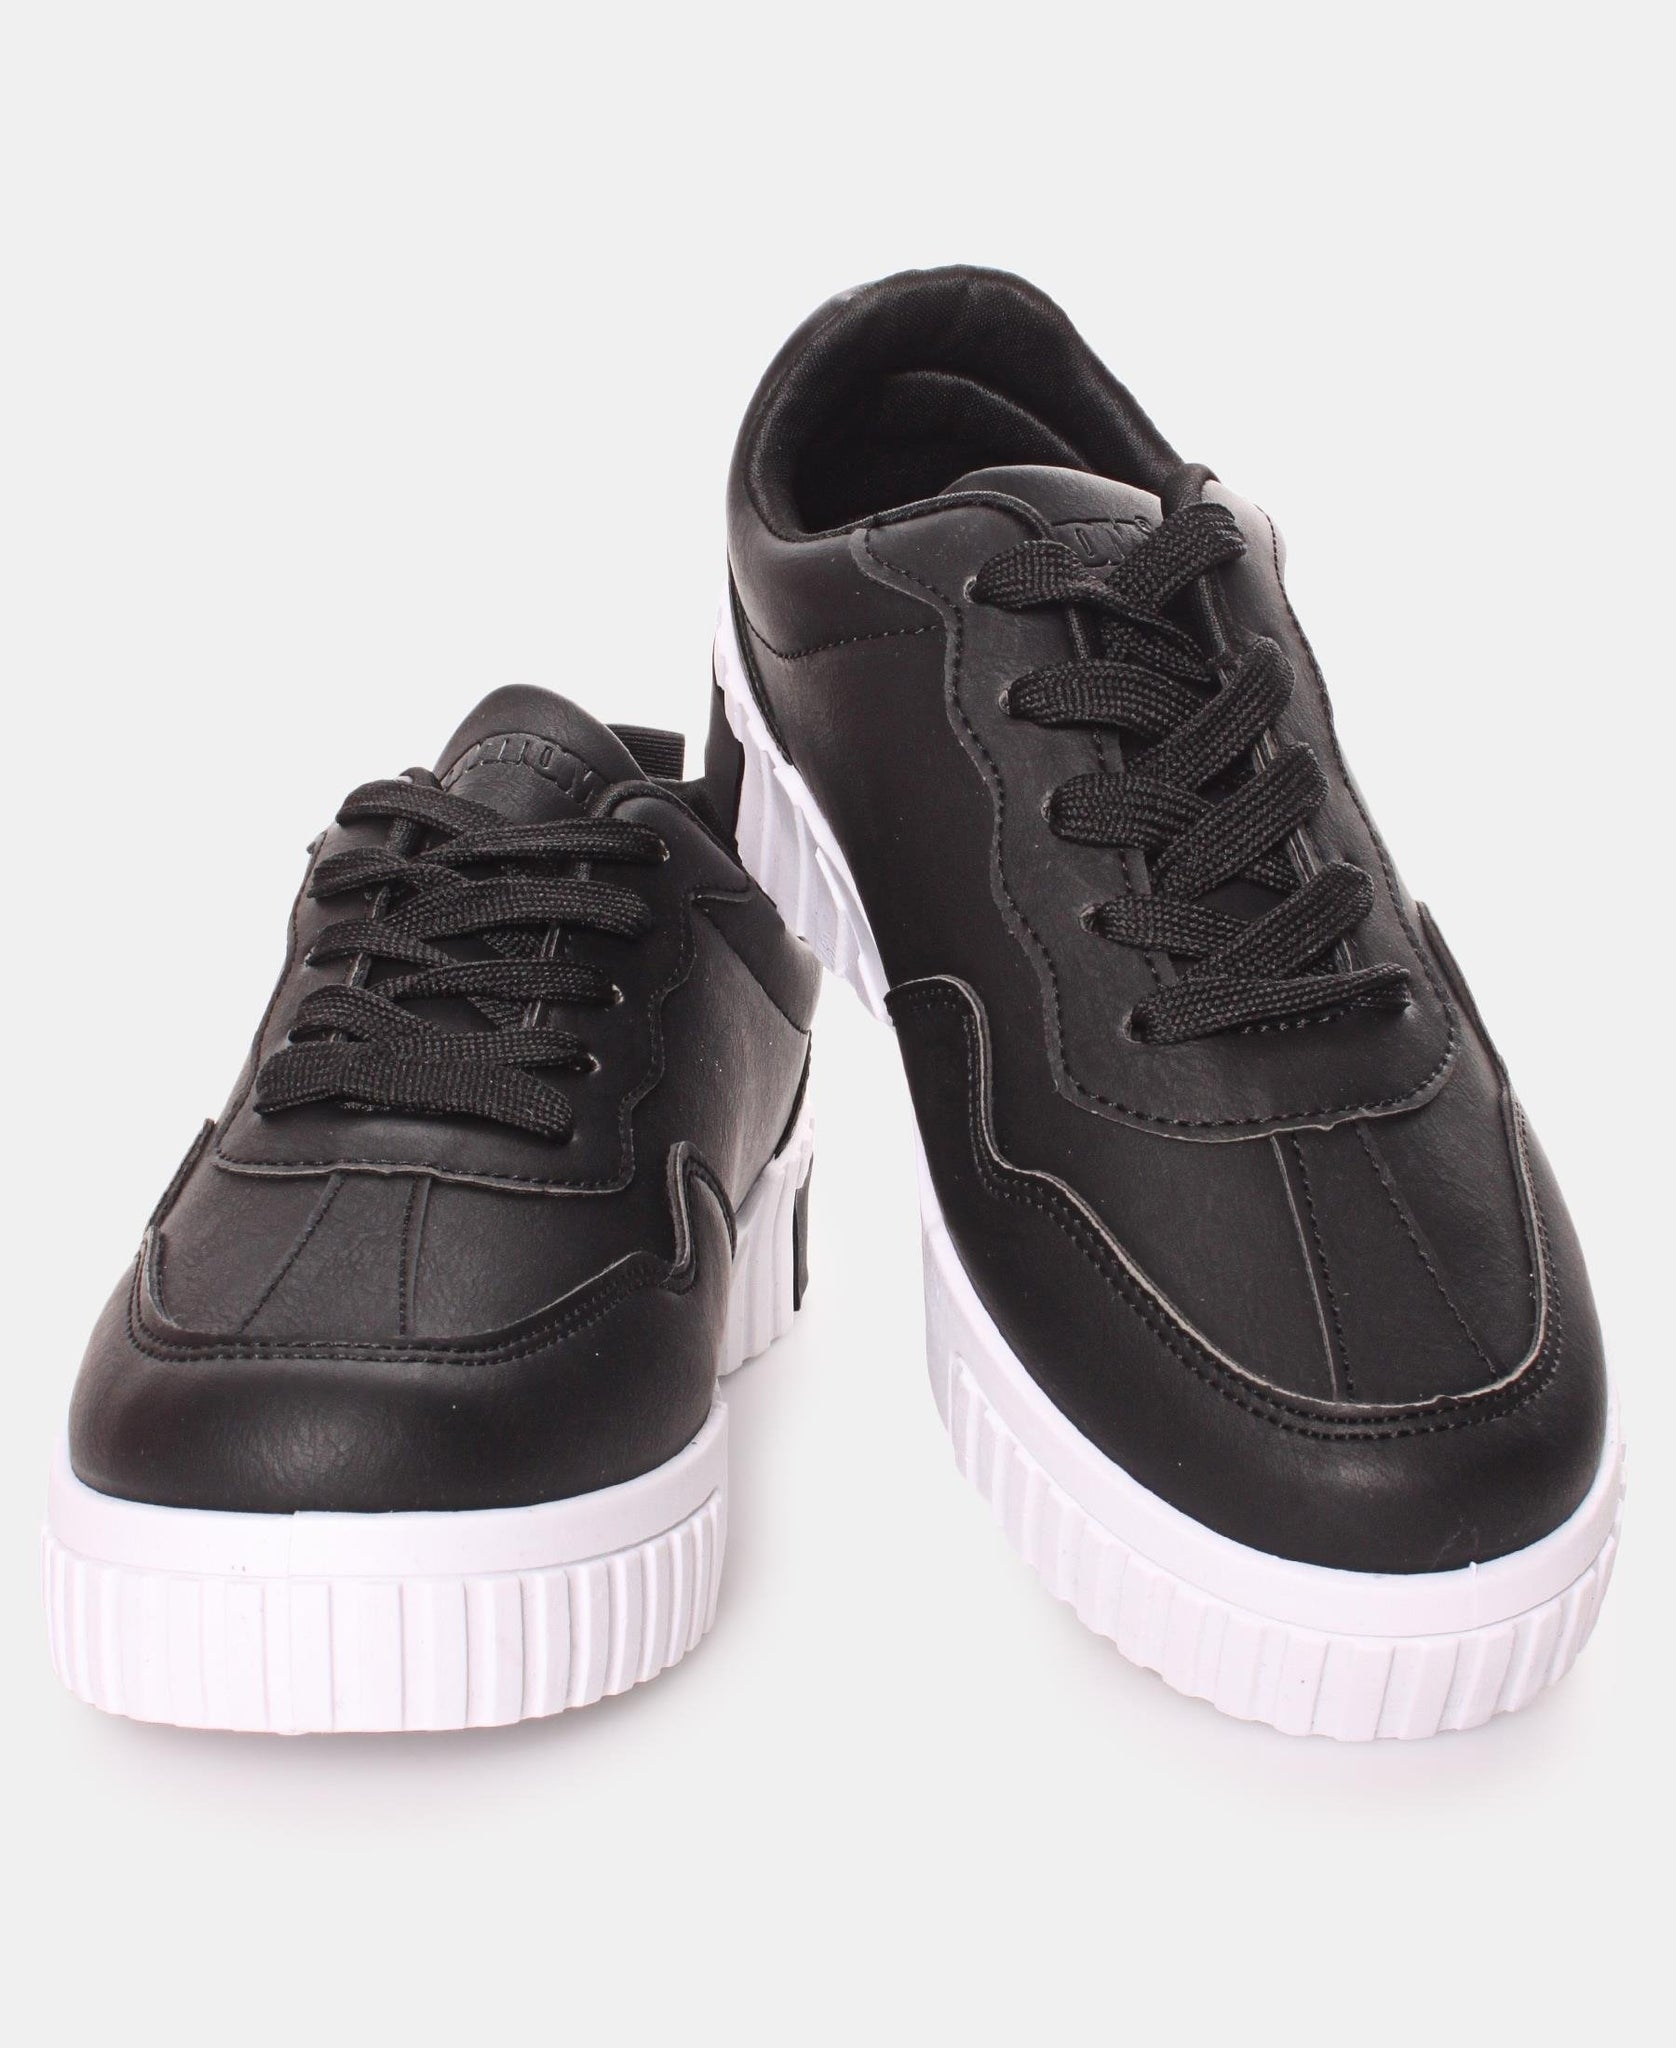 Ladies' Zest Sneakers - Black